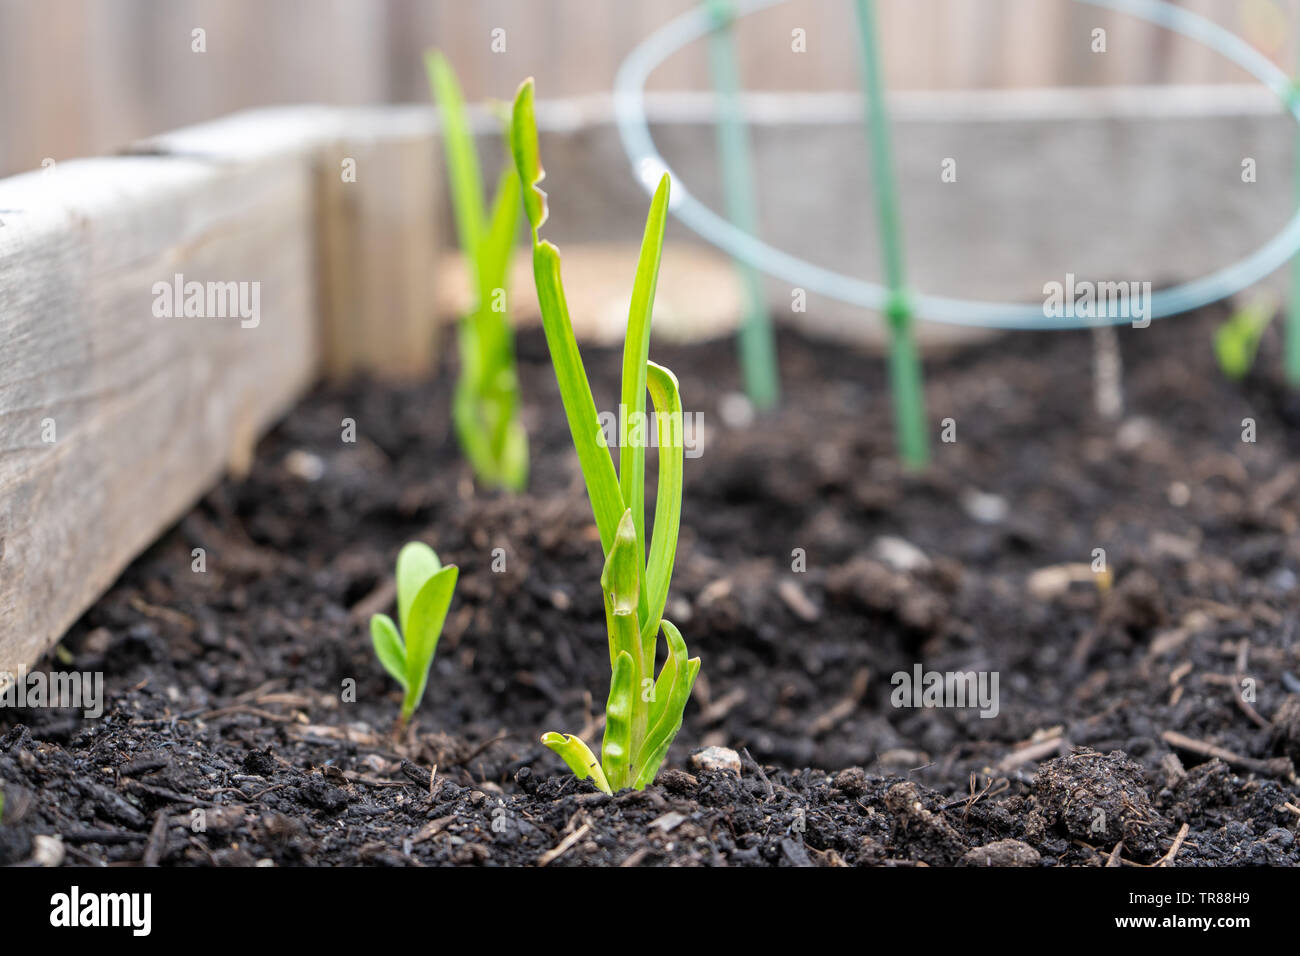 Garlic stems growing from a planted garlic clove, in a home garden planter. - Stock Image